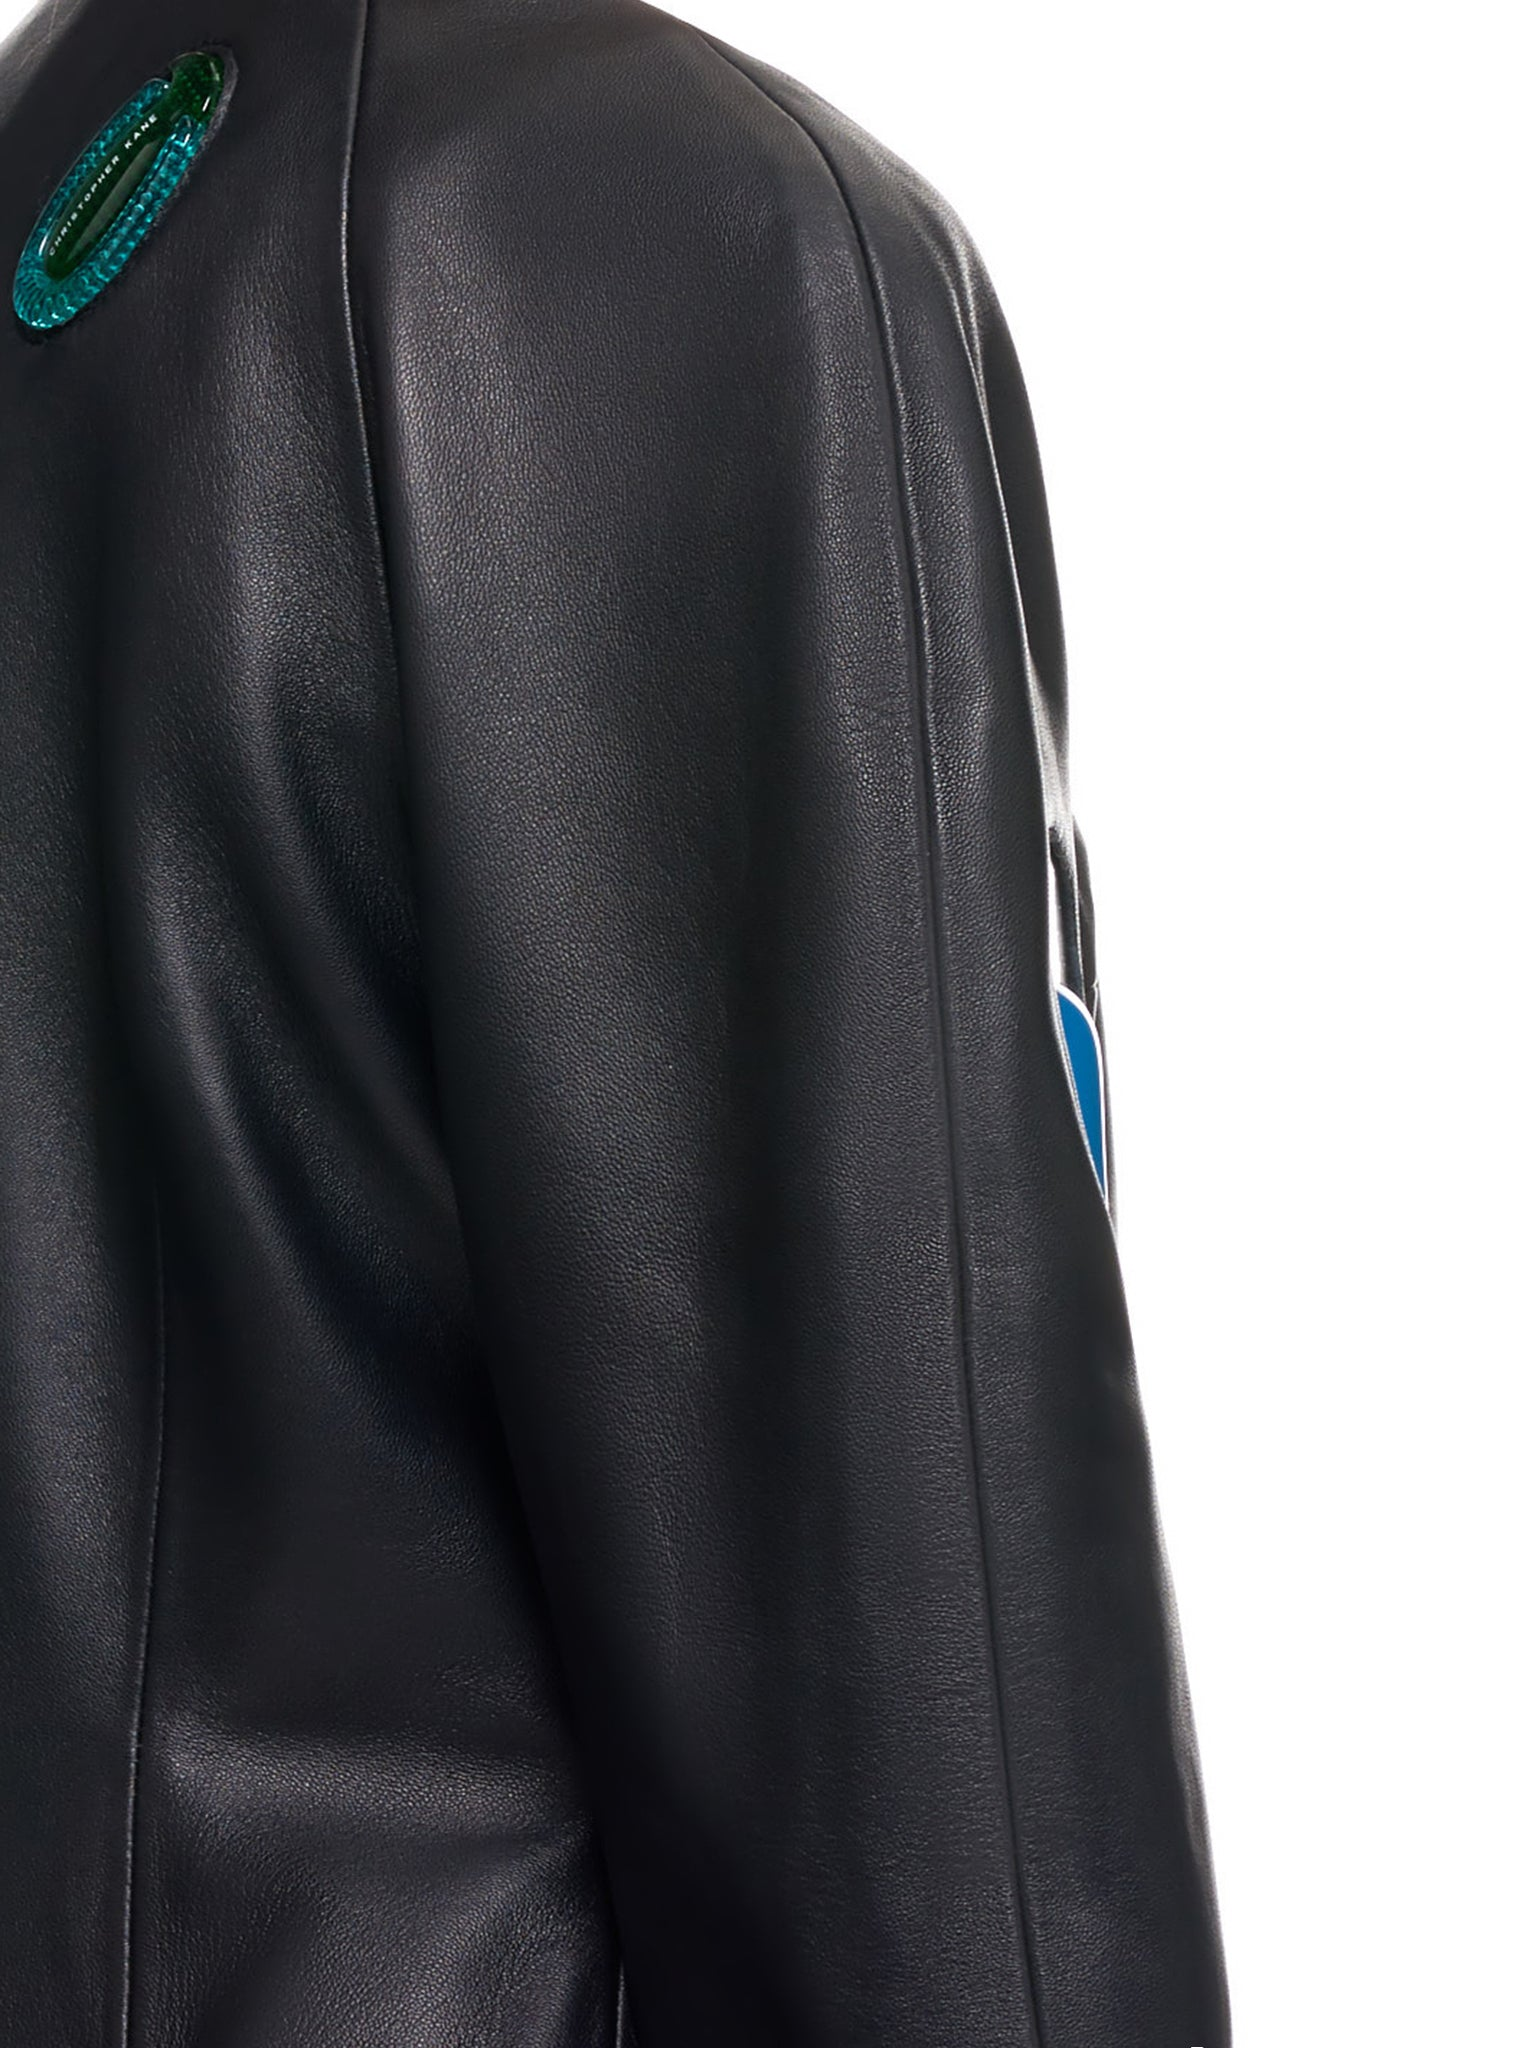 Christopher Kane Leather Jacket | H.Lorenzo Detail 2